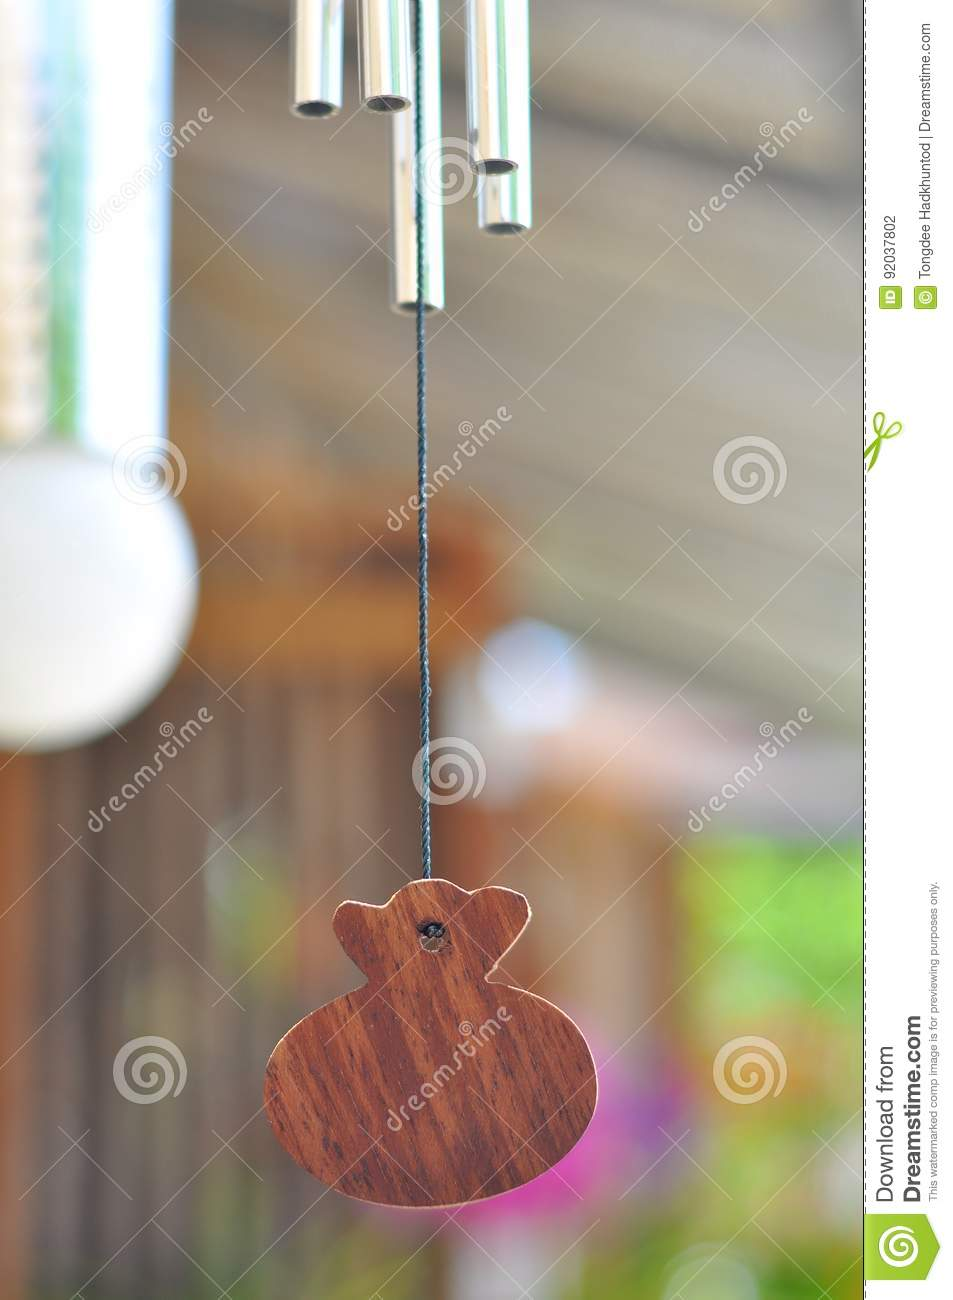 Wind Chime stock photo  Image of chime, relax, stye, wind - 92037802